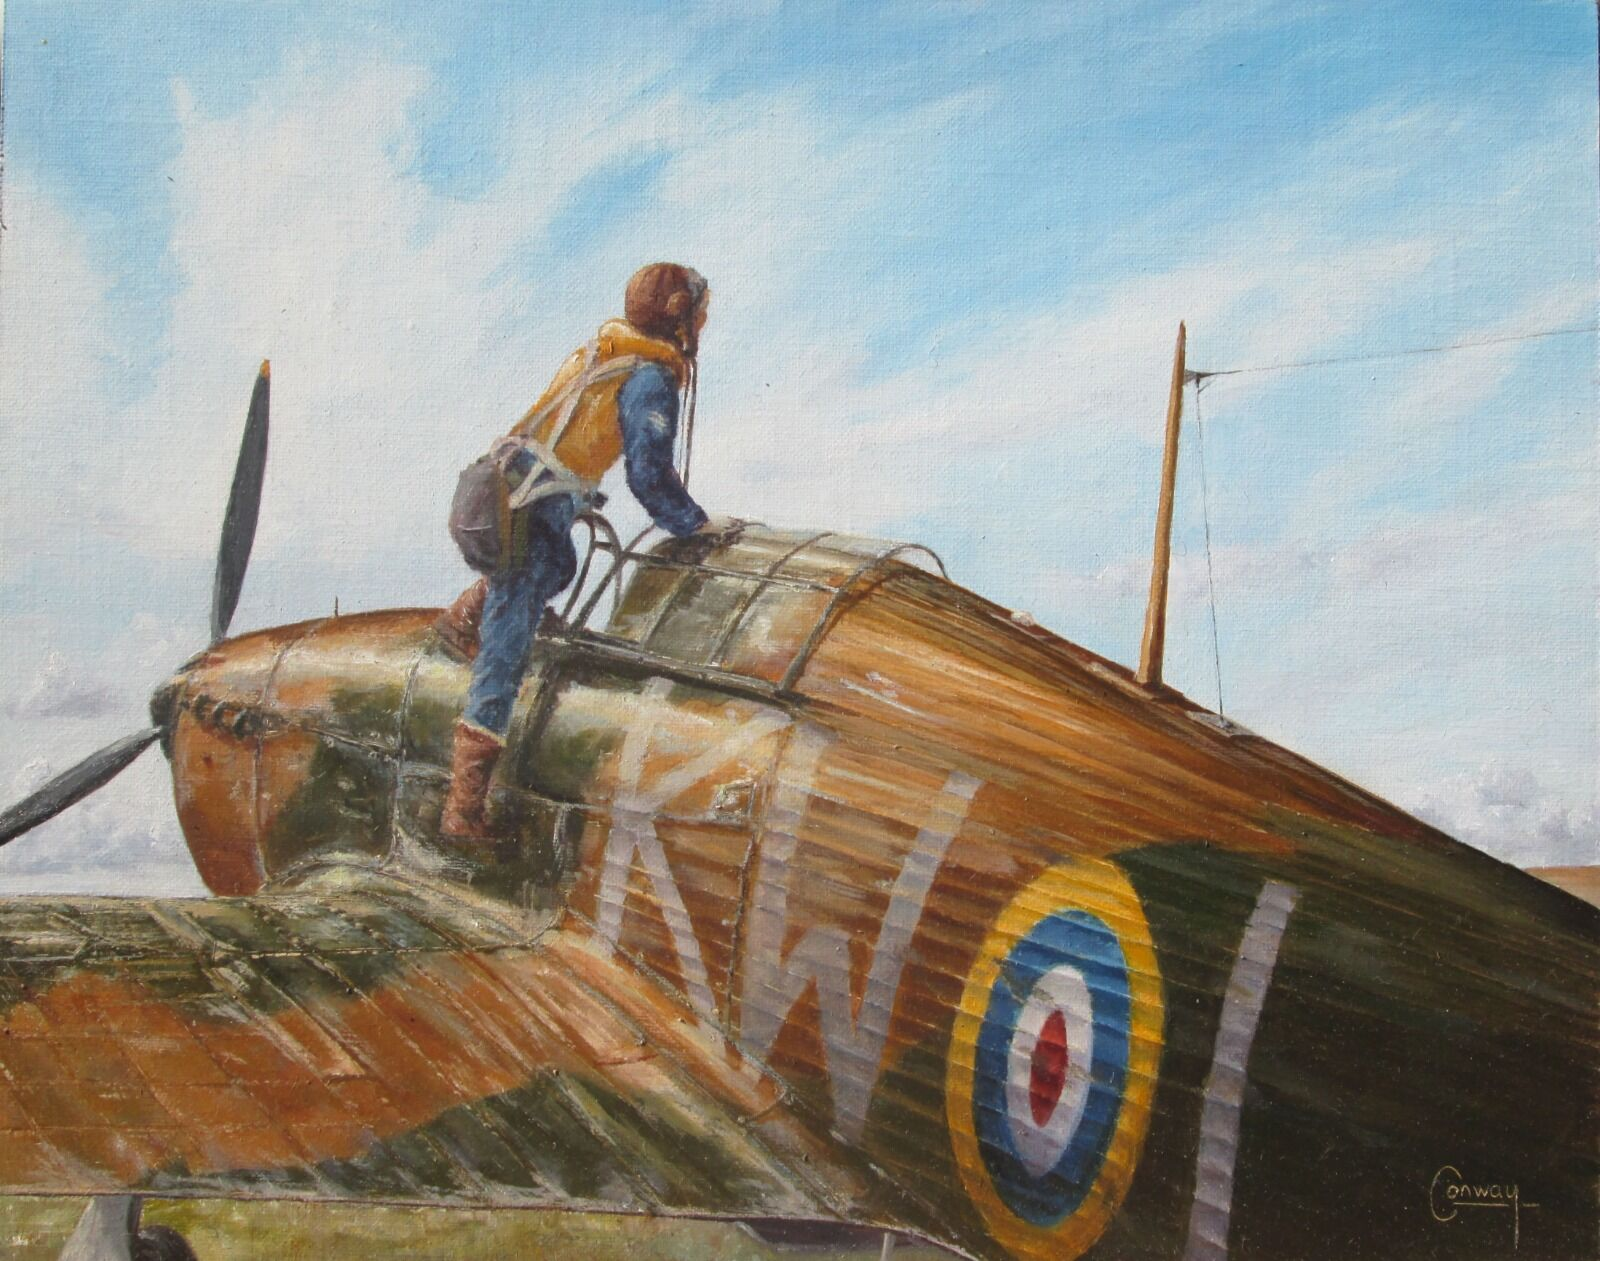 'Scanning the Sky' - Hurricane of No. 615 Squadron